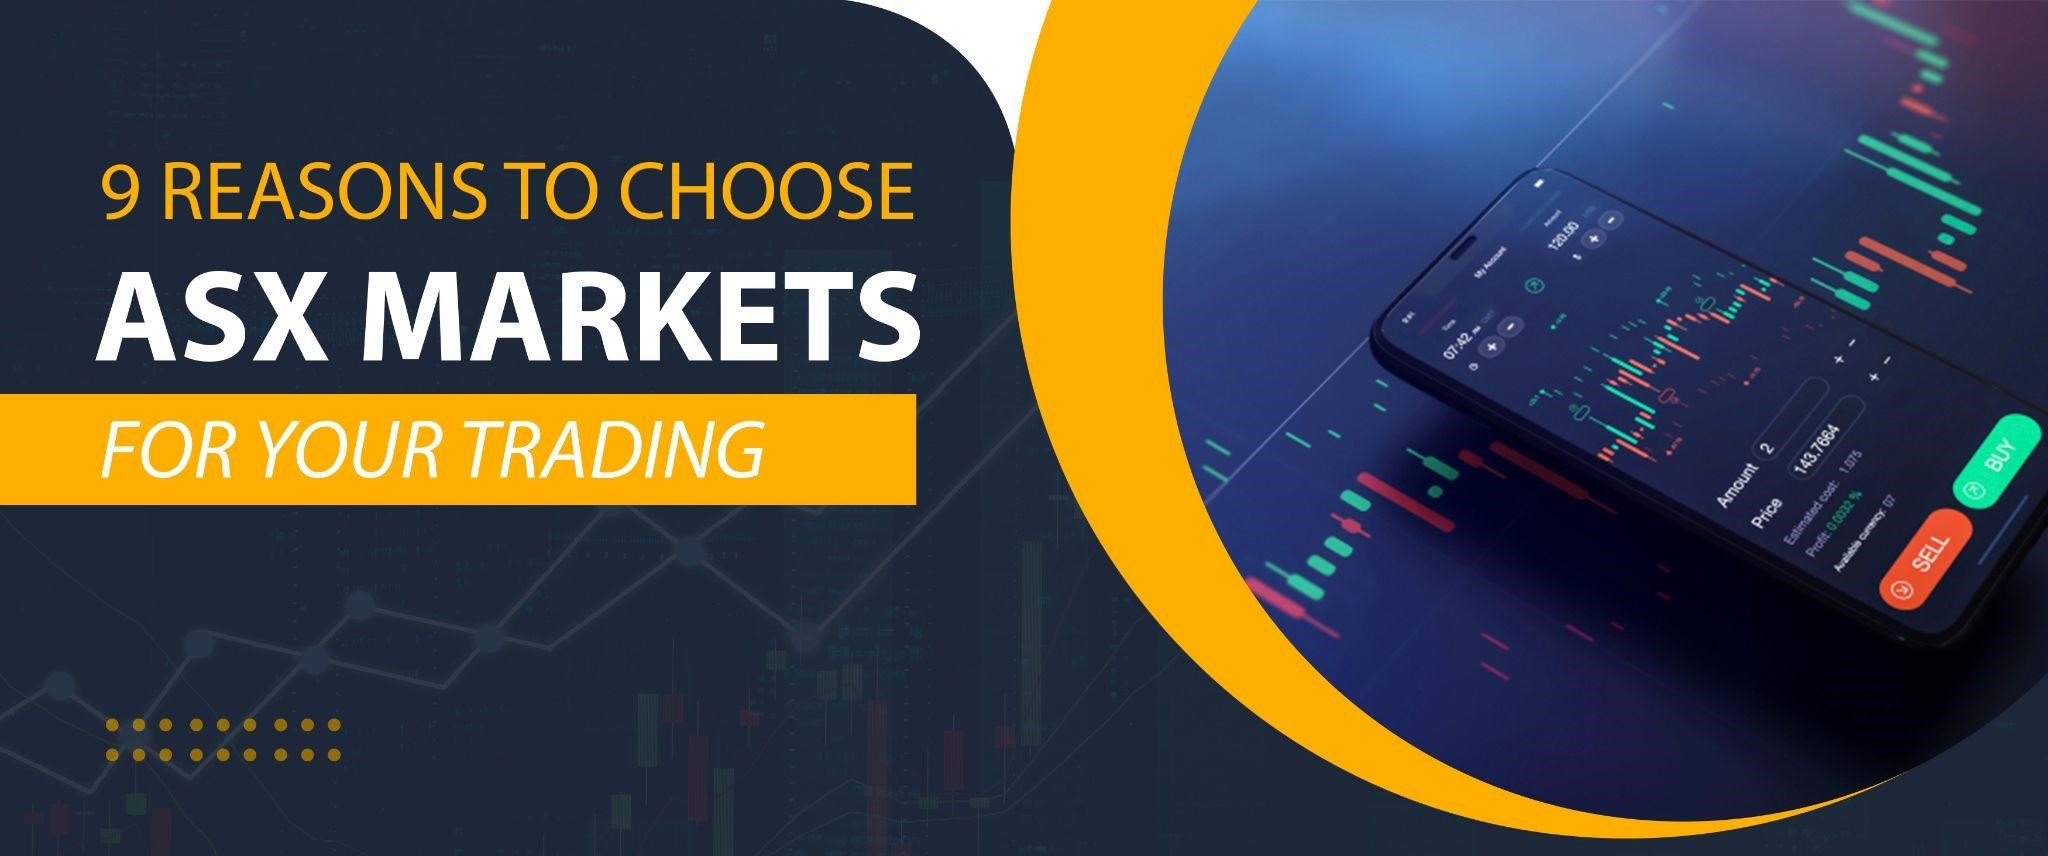 9 REASONS TO CHOOSE ASX MARKETS FOR YOUR TRADING